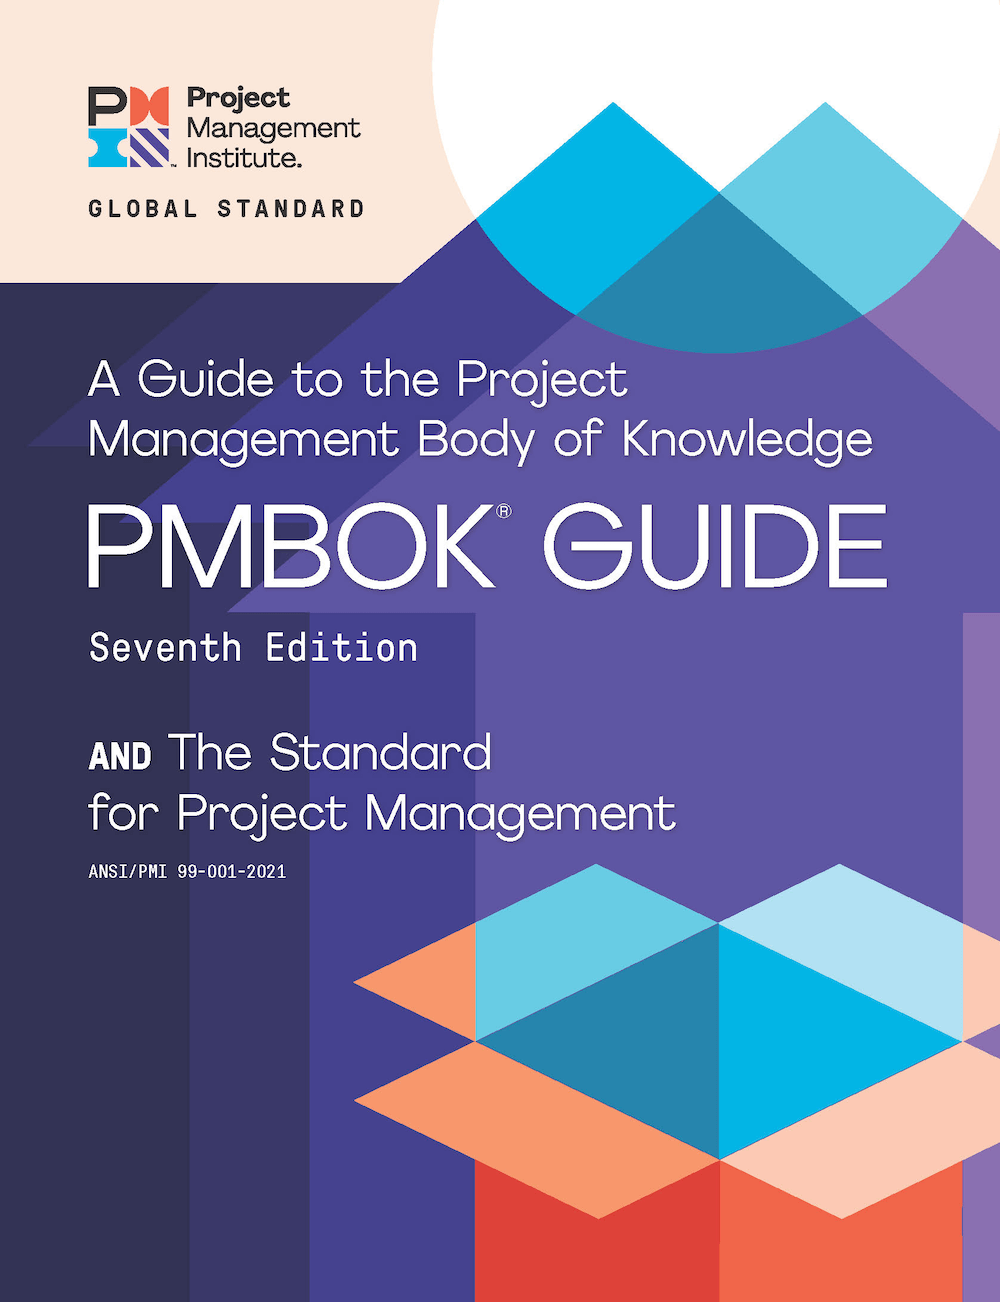 PMBOK Guide 7th Edition PDF Download for PMP and CAPM Certification